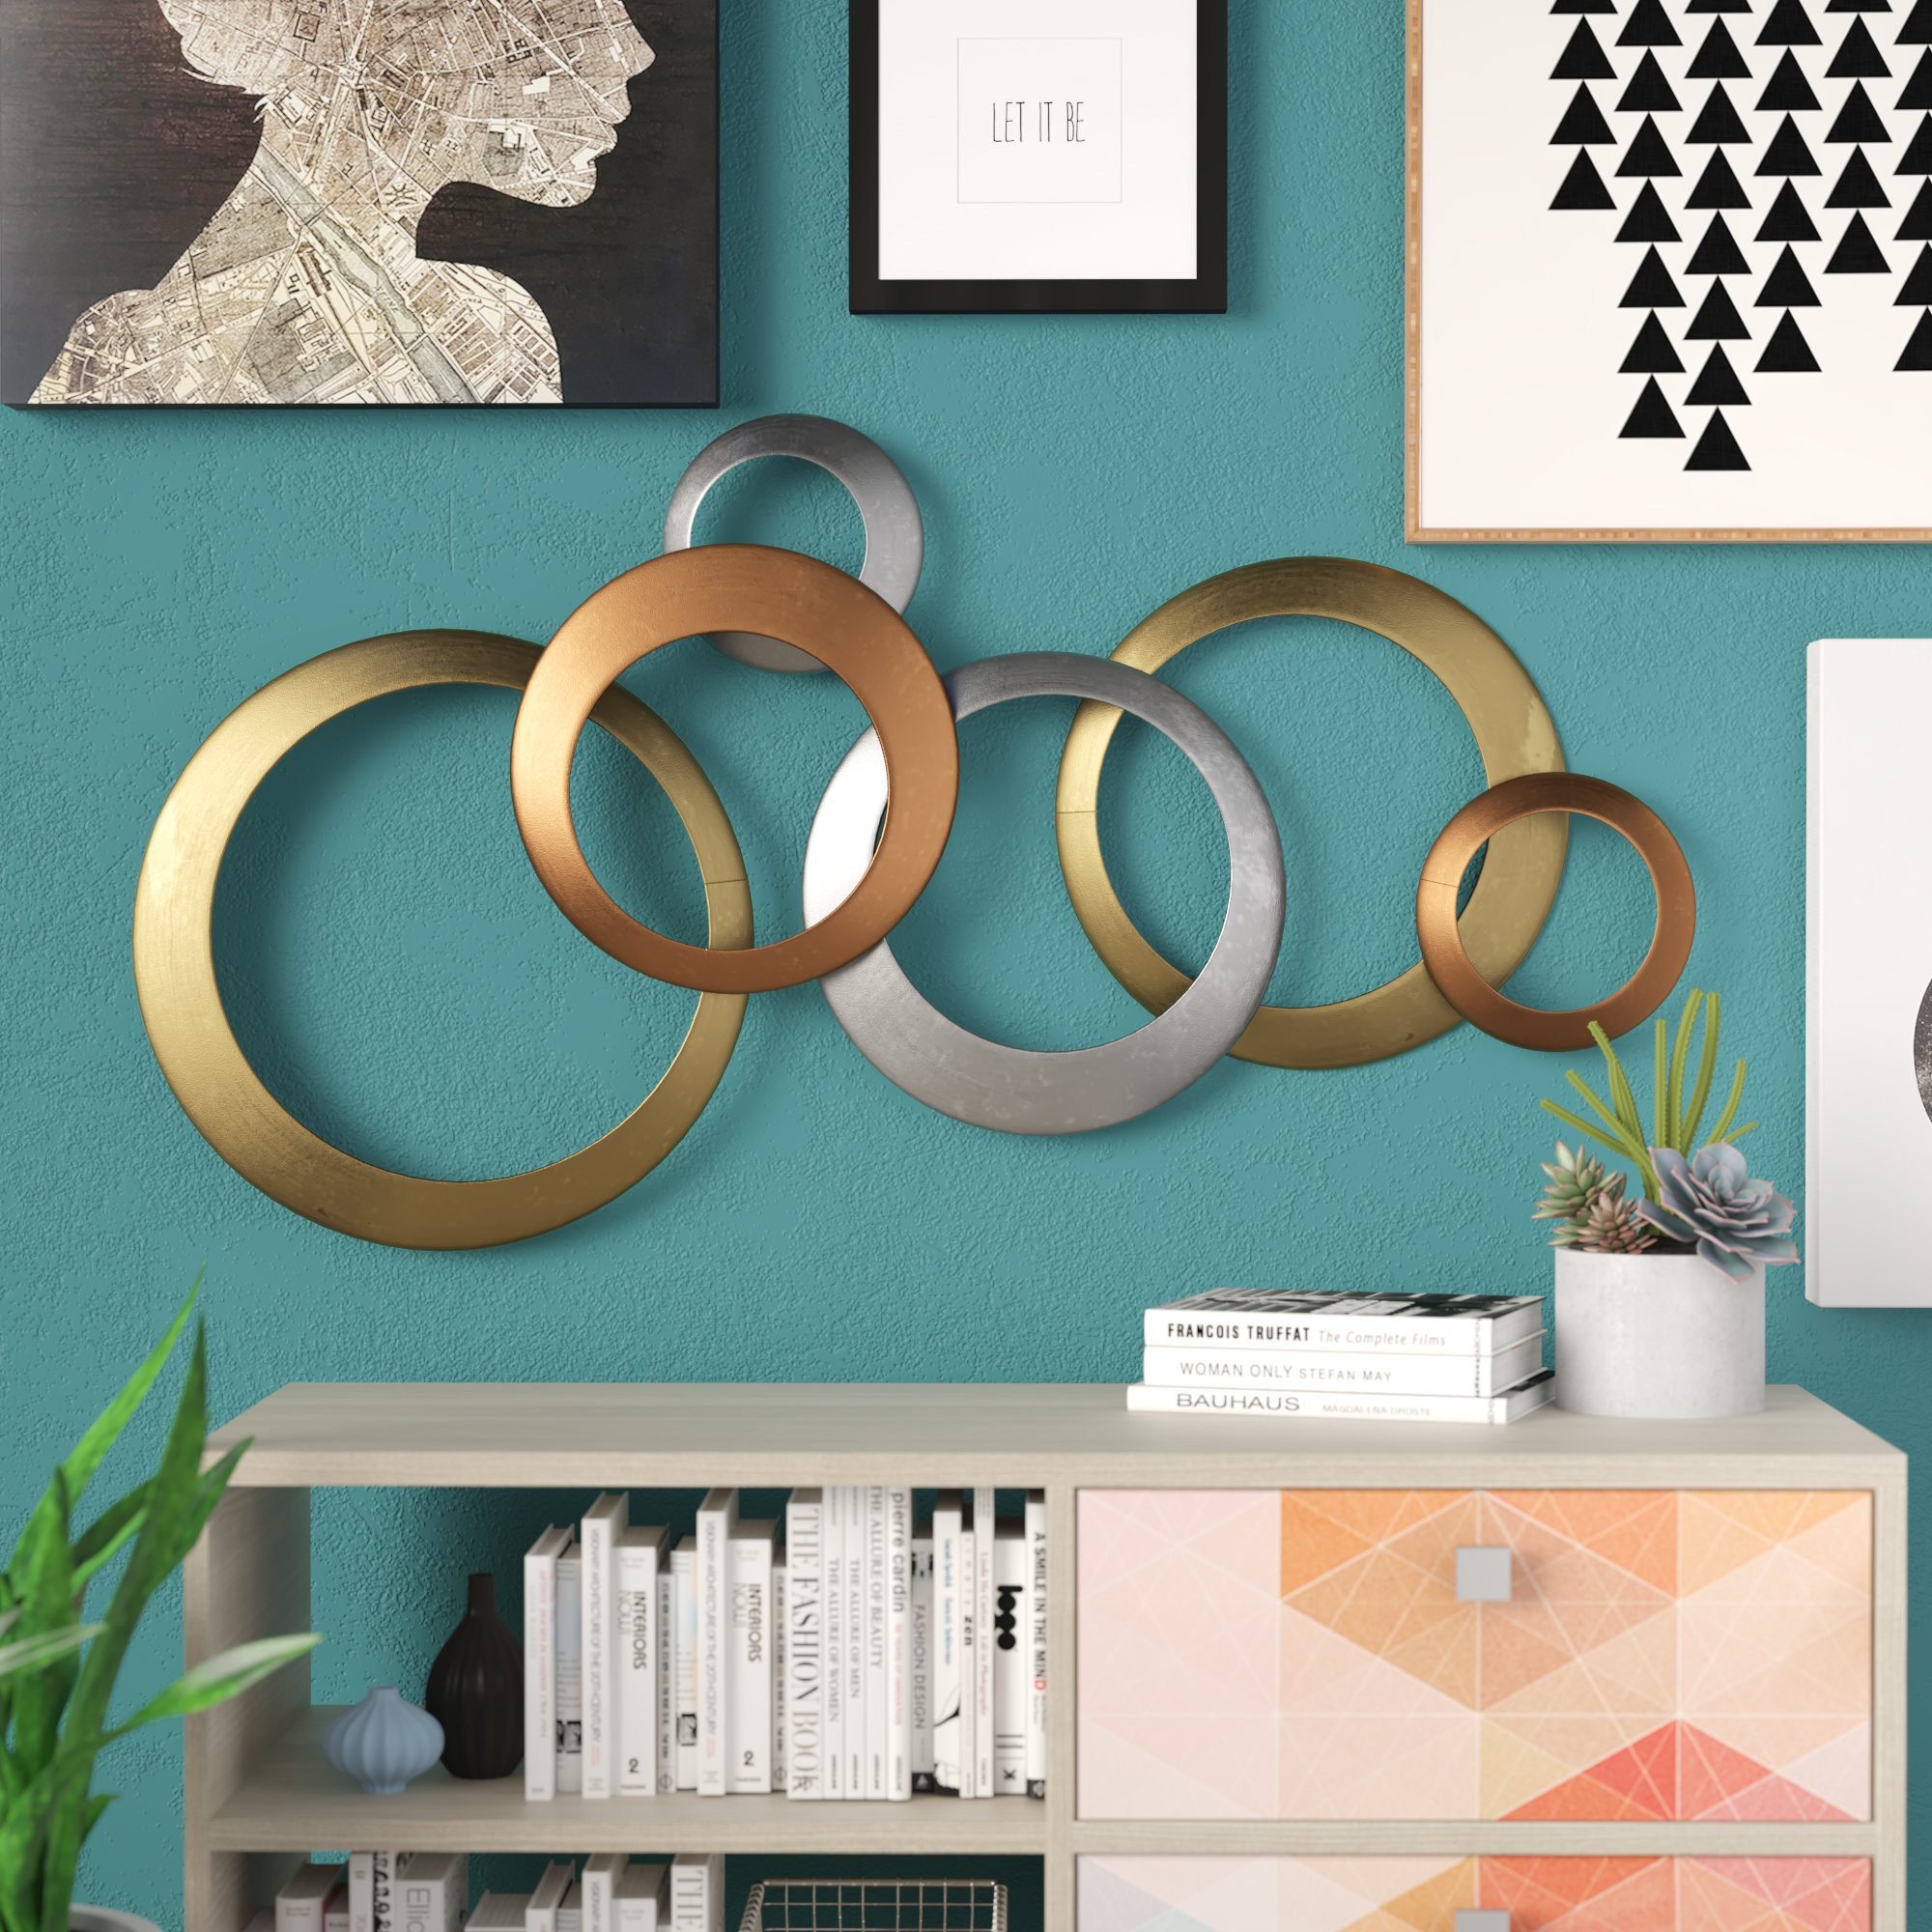 Metal Rings Wall Art | Wayfair Inside Rings Wall Decor (View 7 of 30)